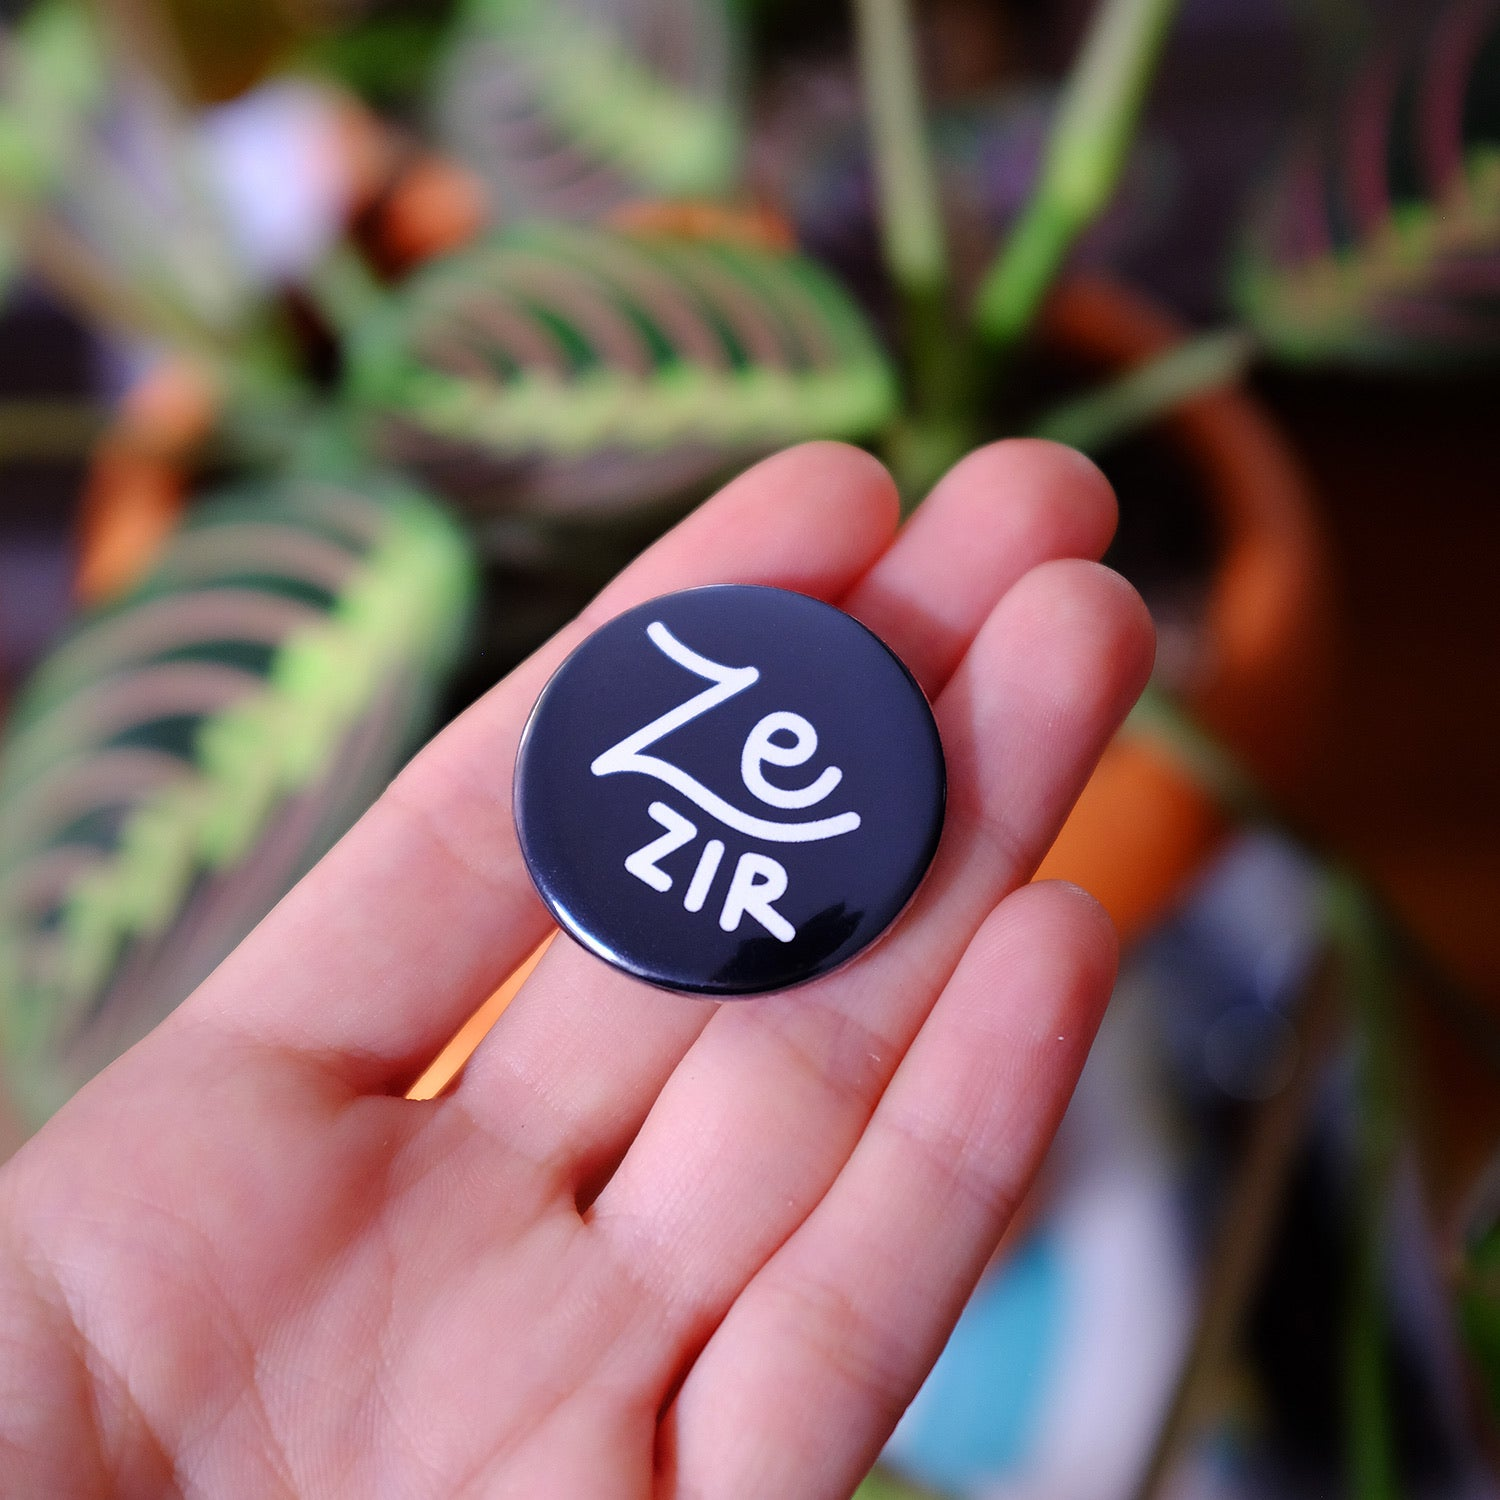 Ze/zir Pronouns Button